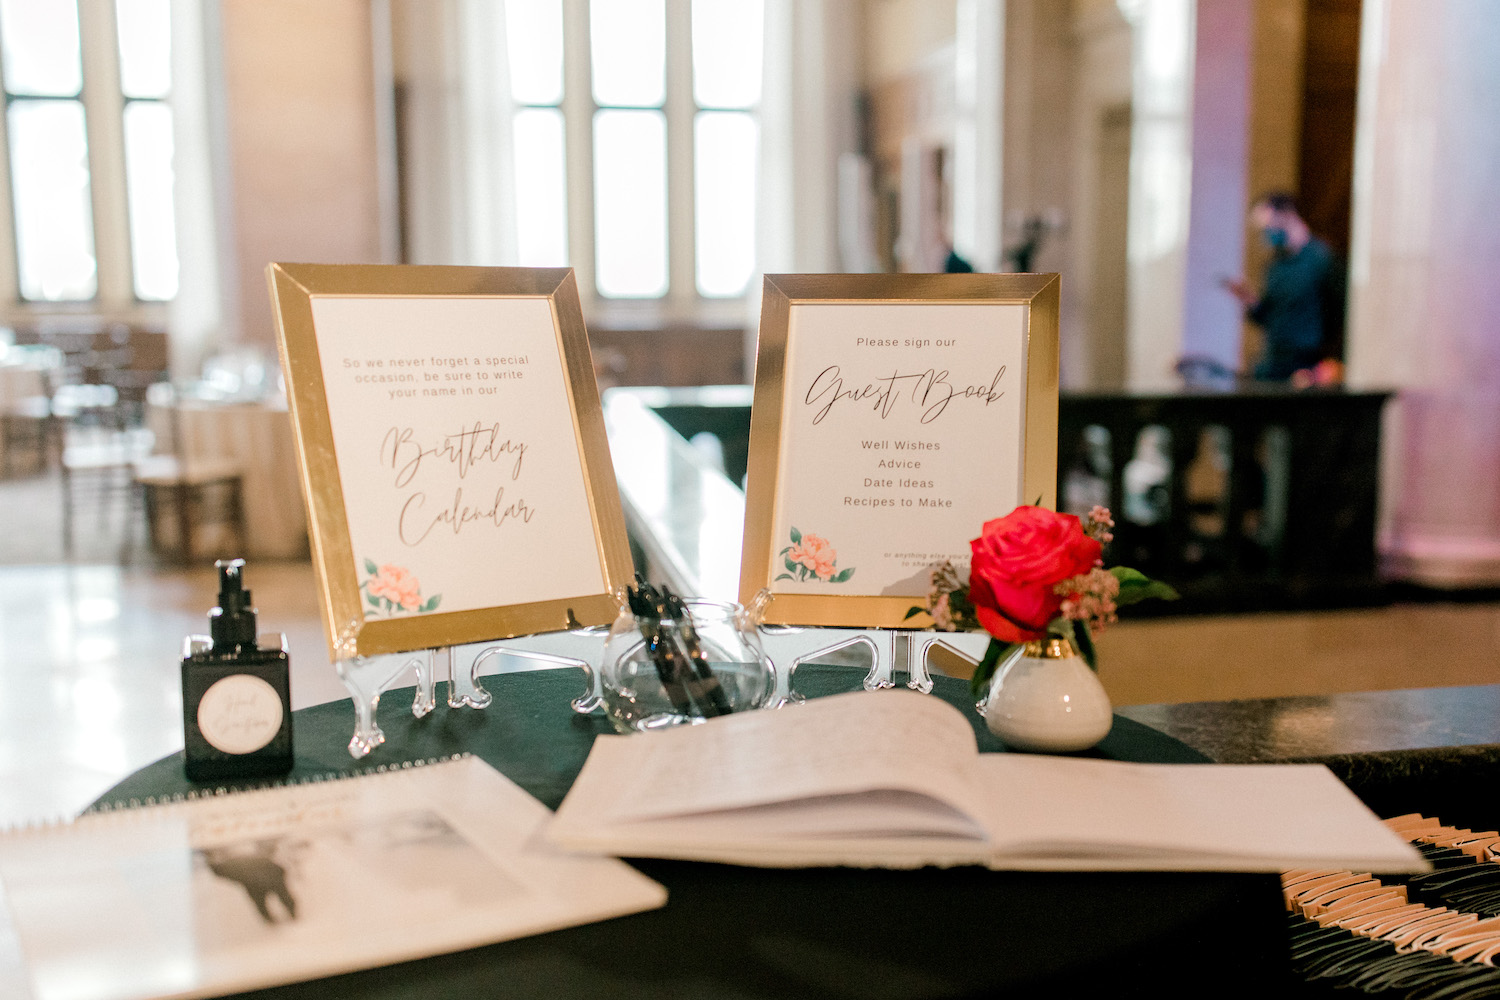 Guest book signs and book for City Flats Hotel wedding